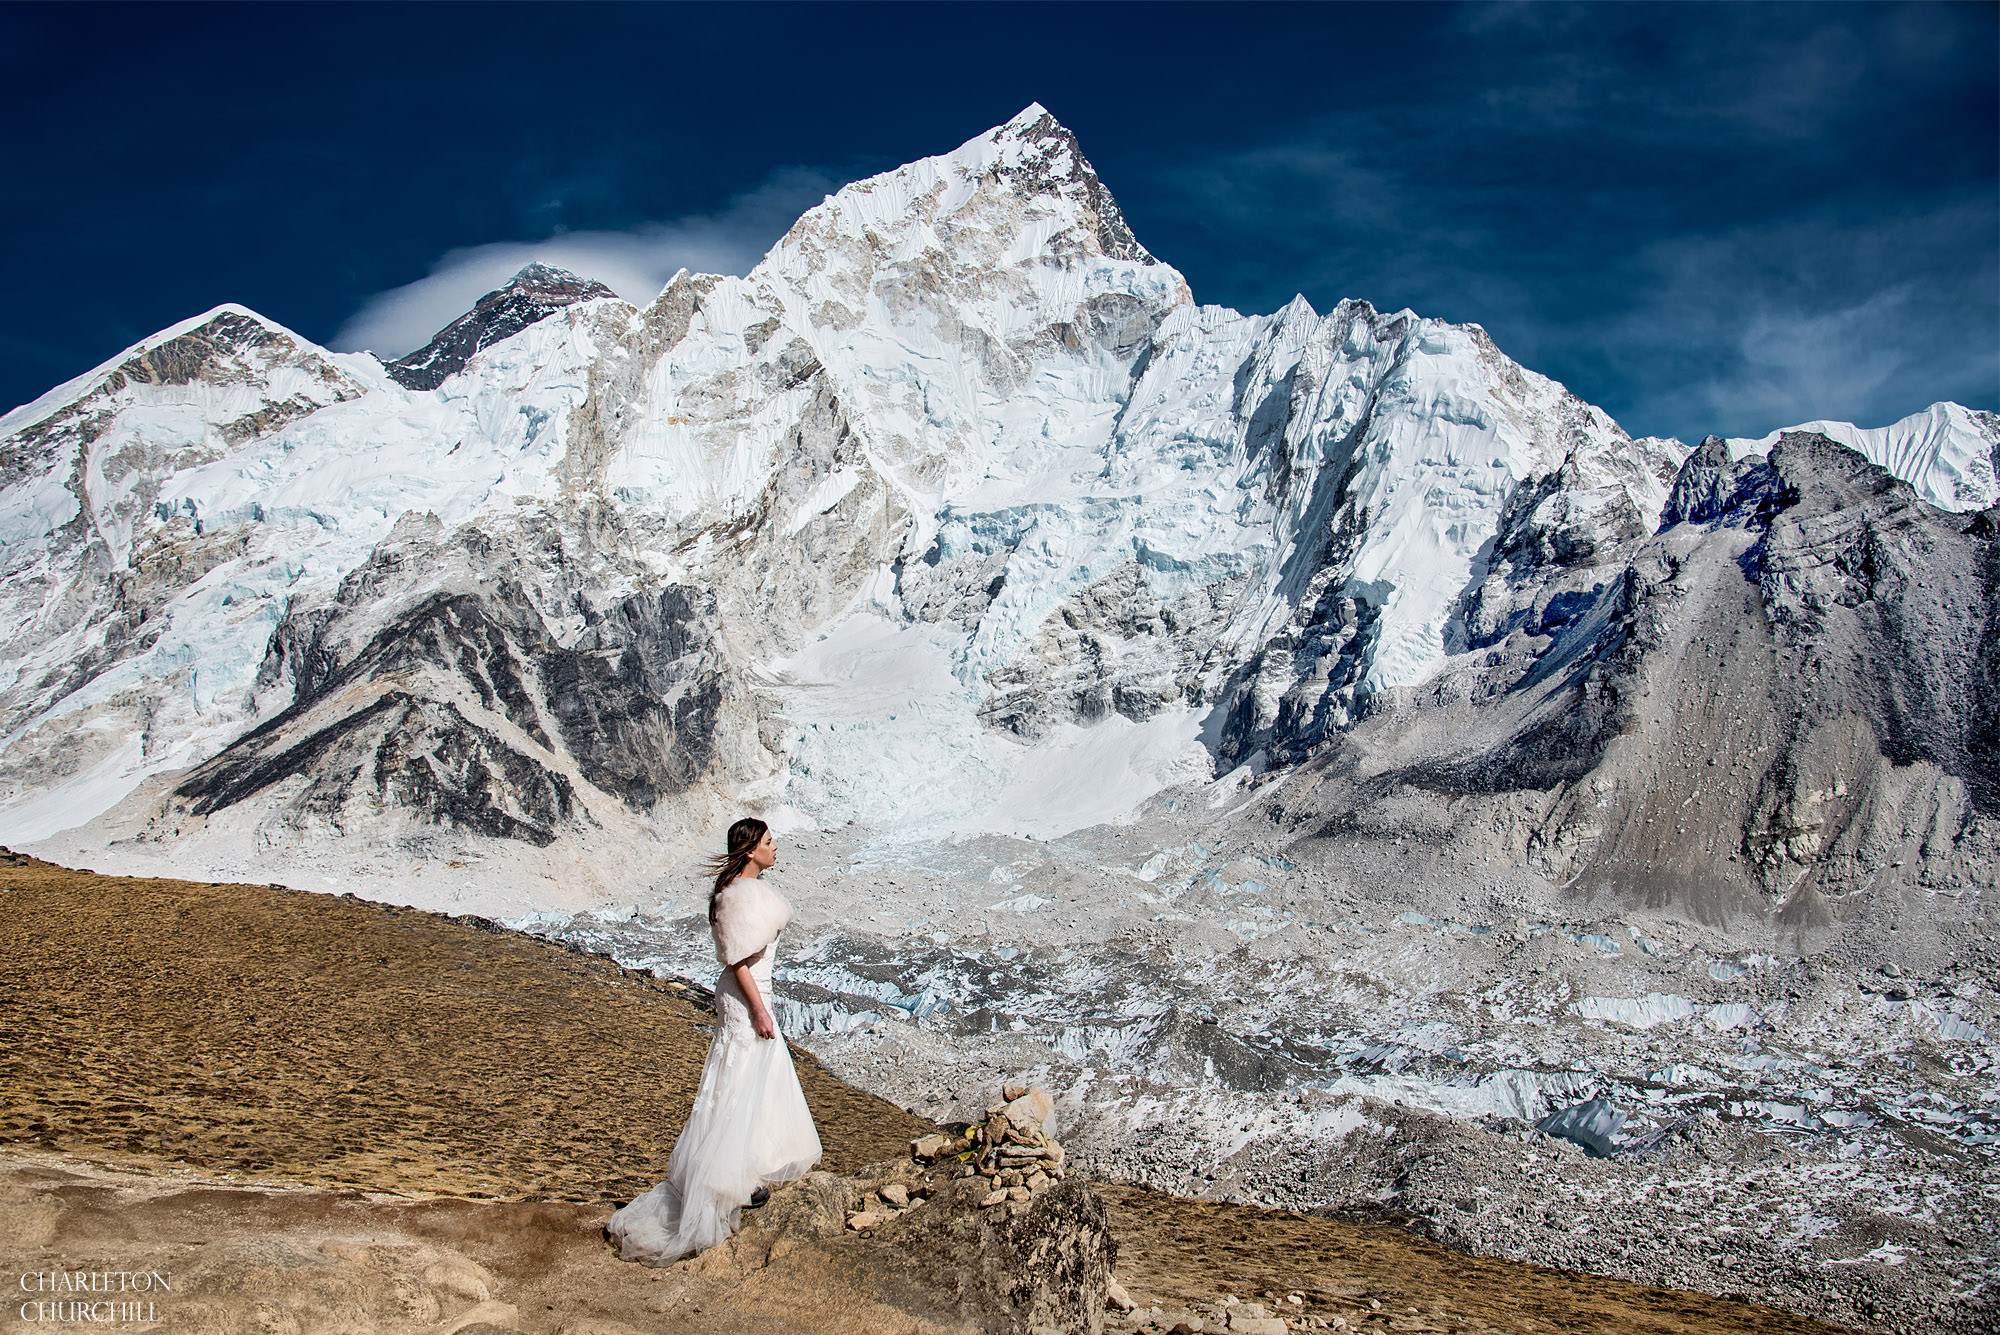 epic bridal portrait on Mt. Everest in her wedding dress and bride wrap in below freezing temperatures